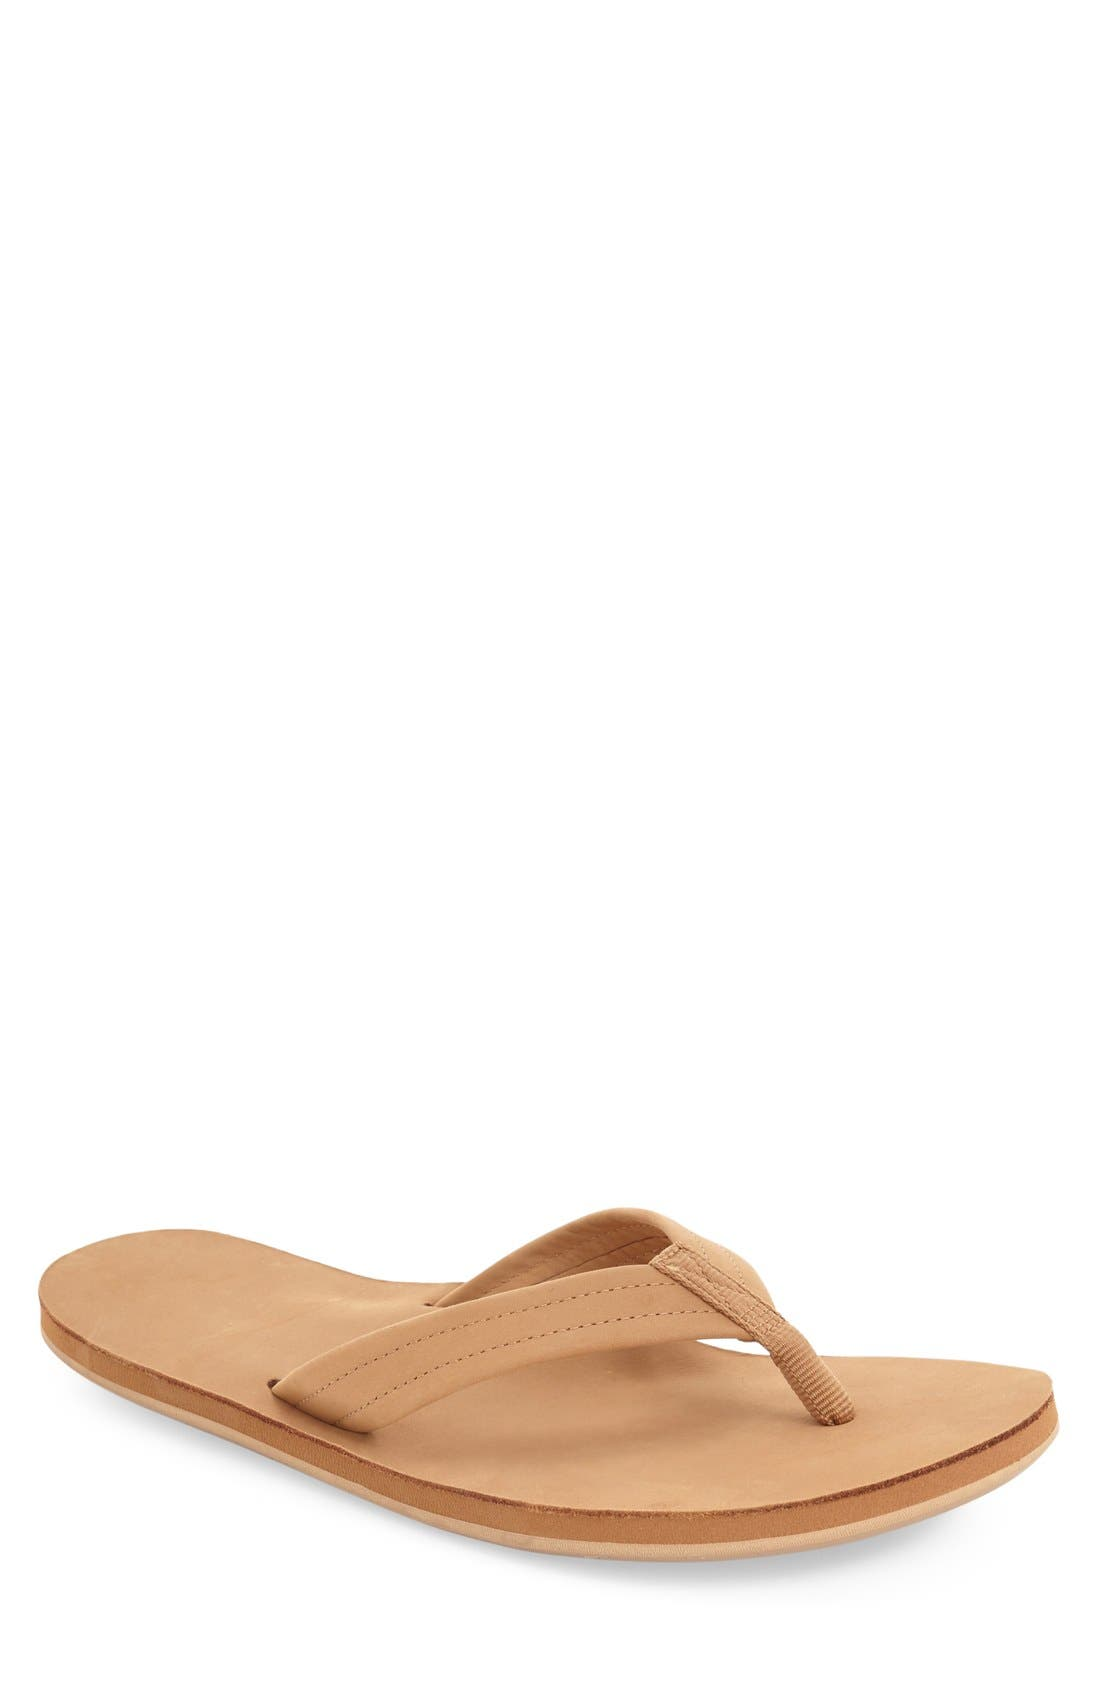 Fields Flip Flop,                             Main thumbnail 1, color,                             TAN/ ORANGE/ TAN